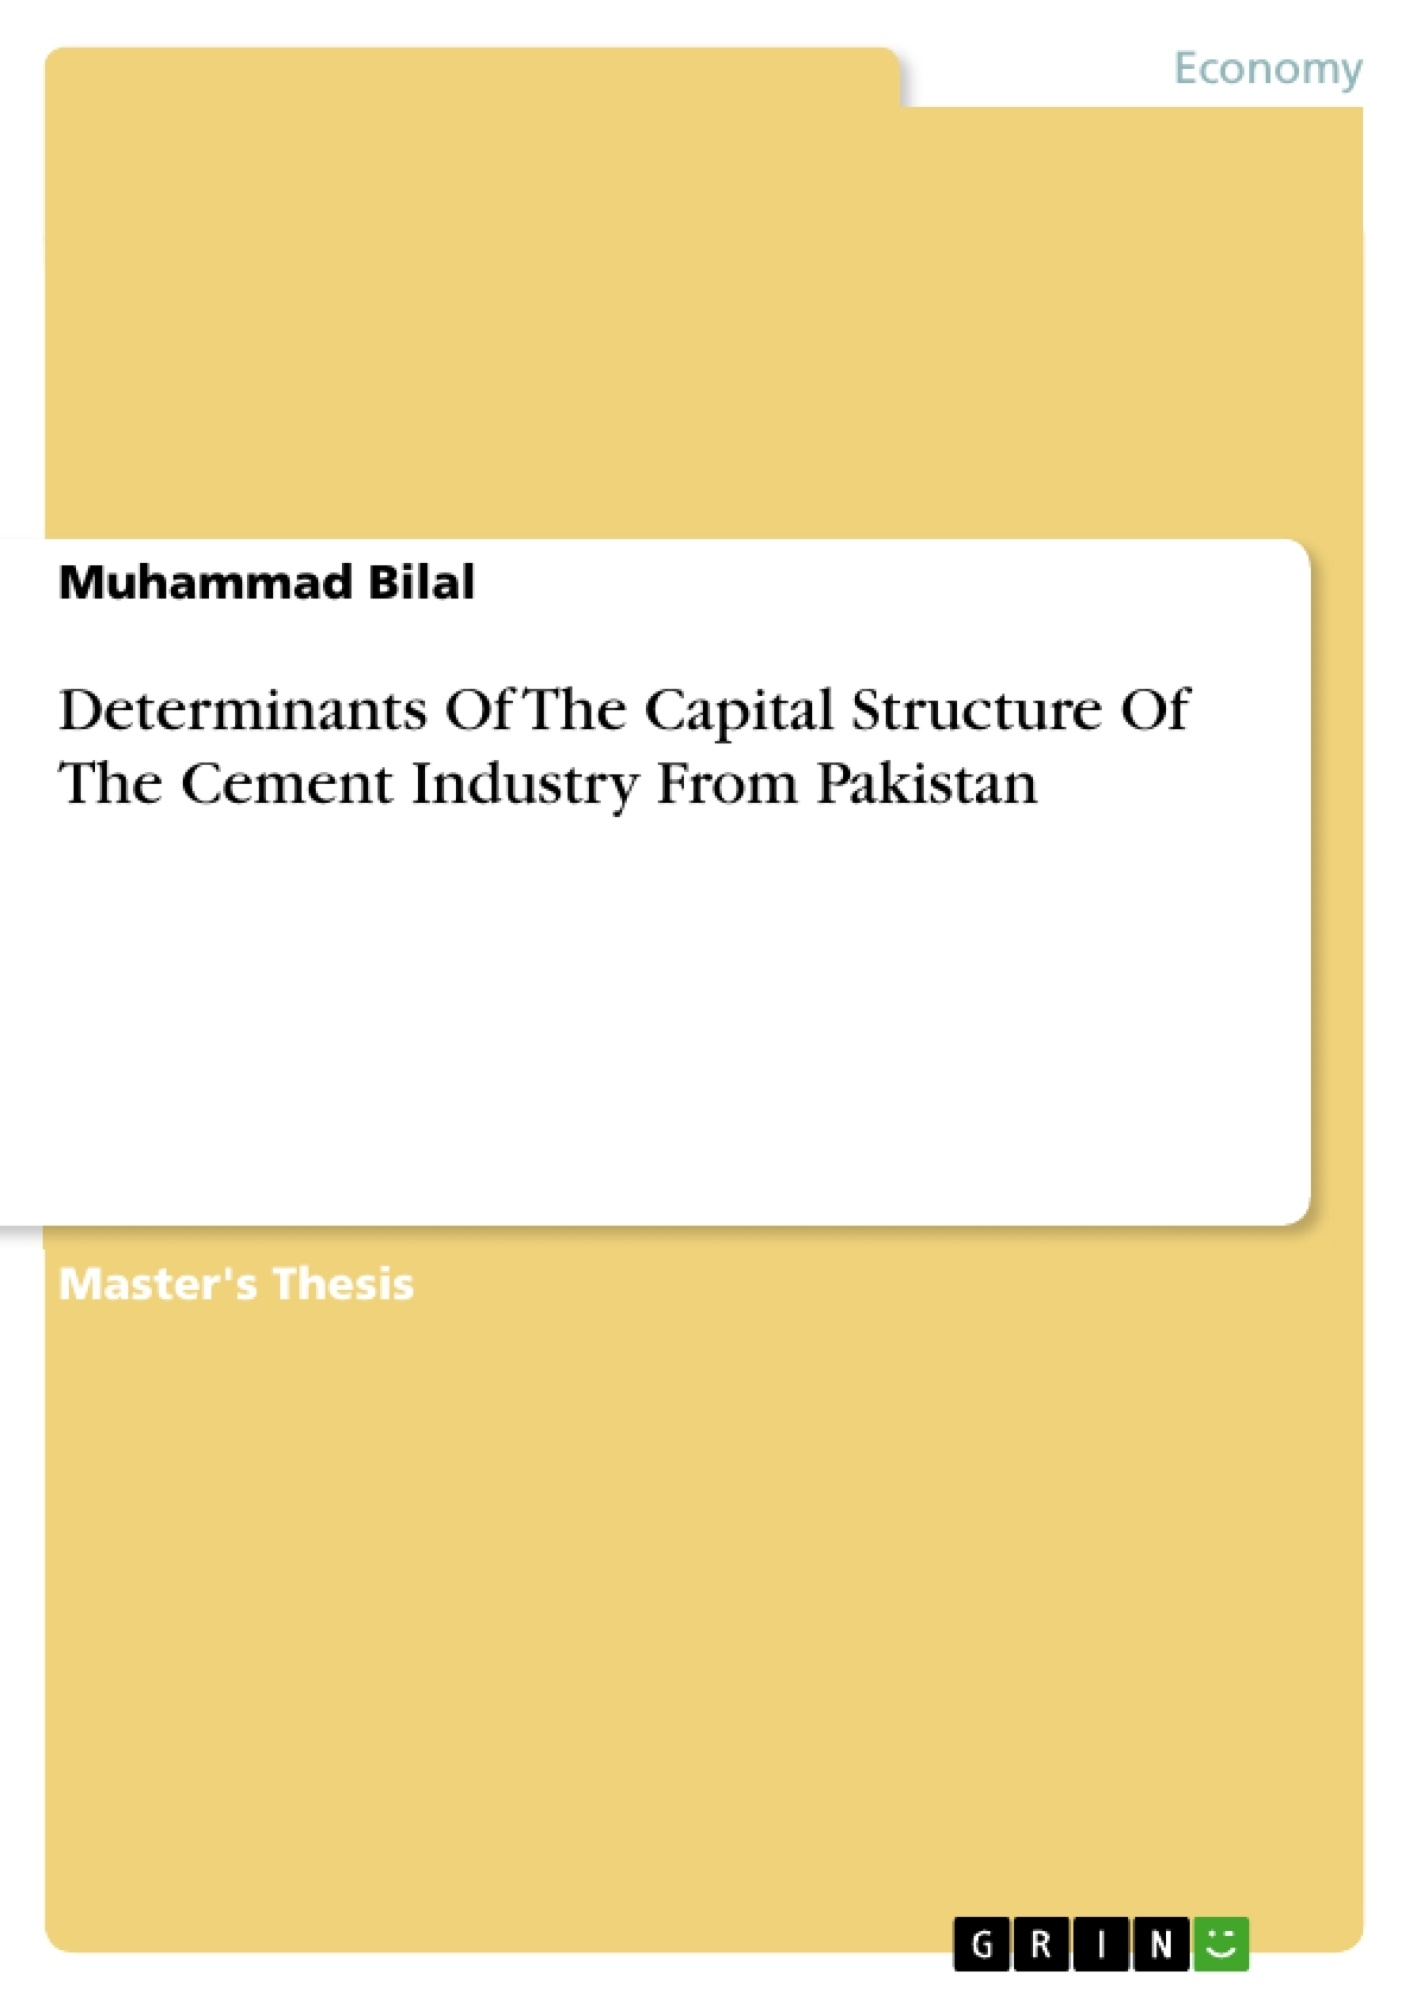 thesis cement industry